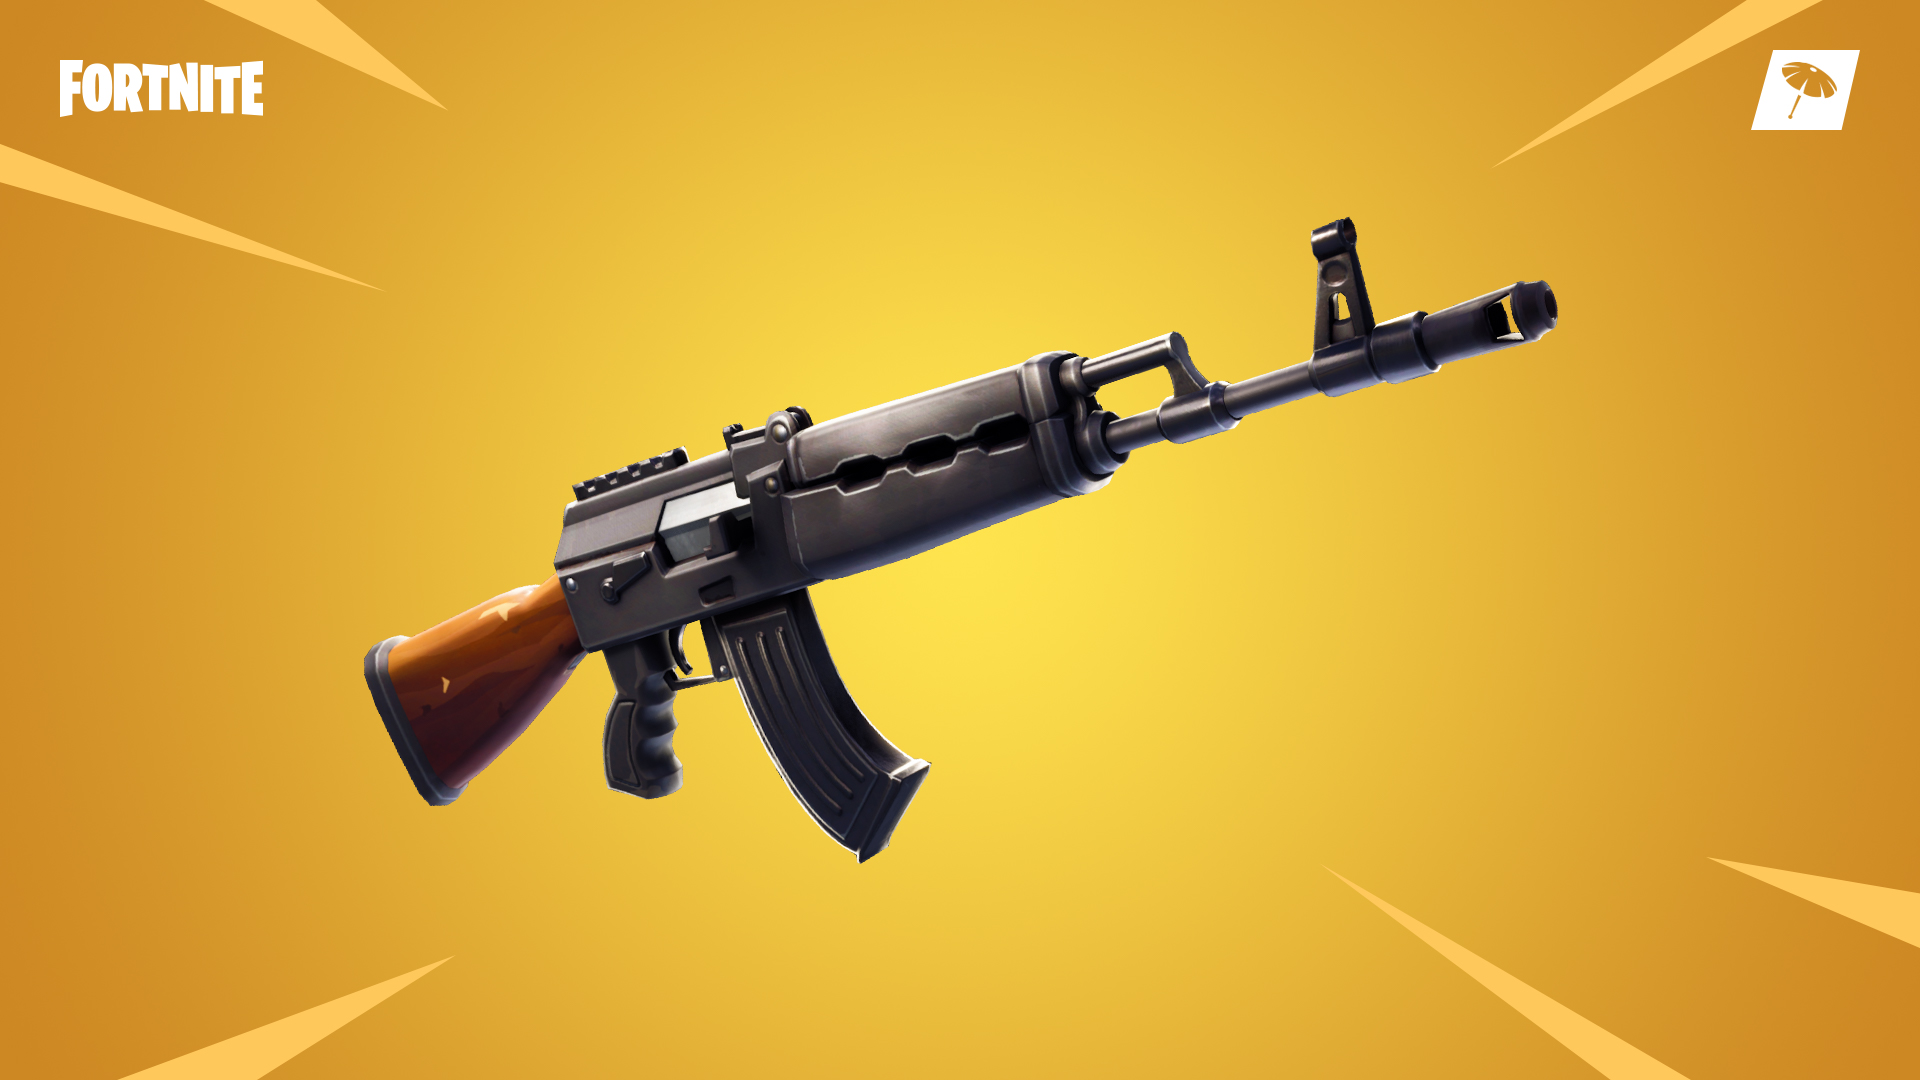 Photo of Fortnite Patch 11.40 Introduces Sidegrading and Heavy Assault Rifle, Patch Notes